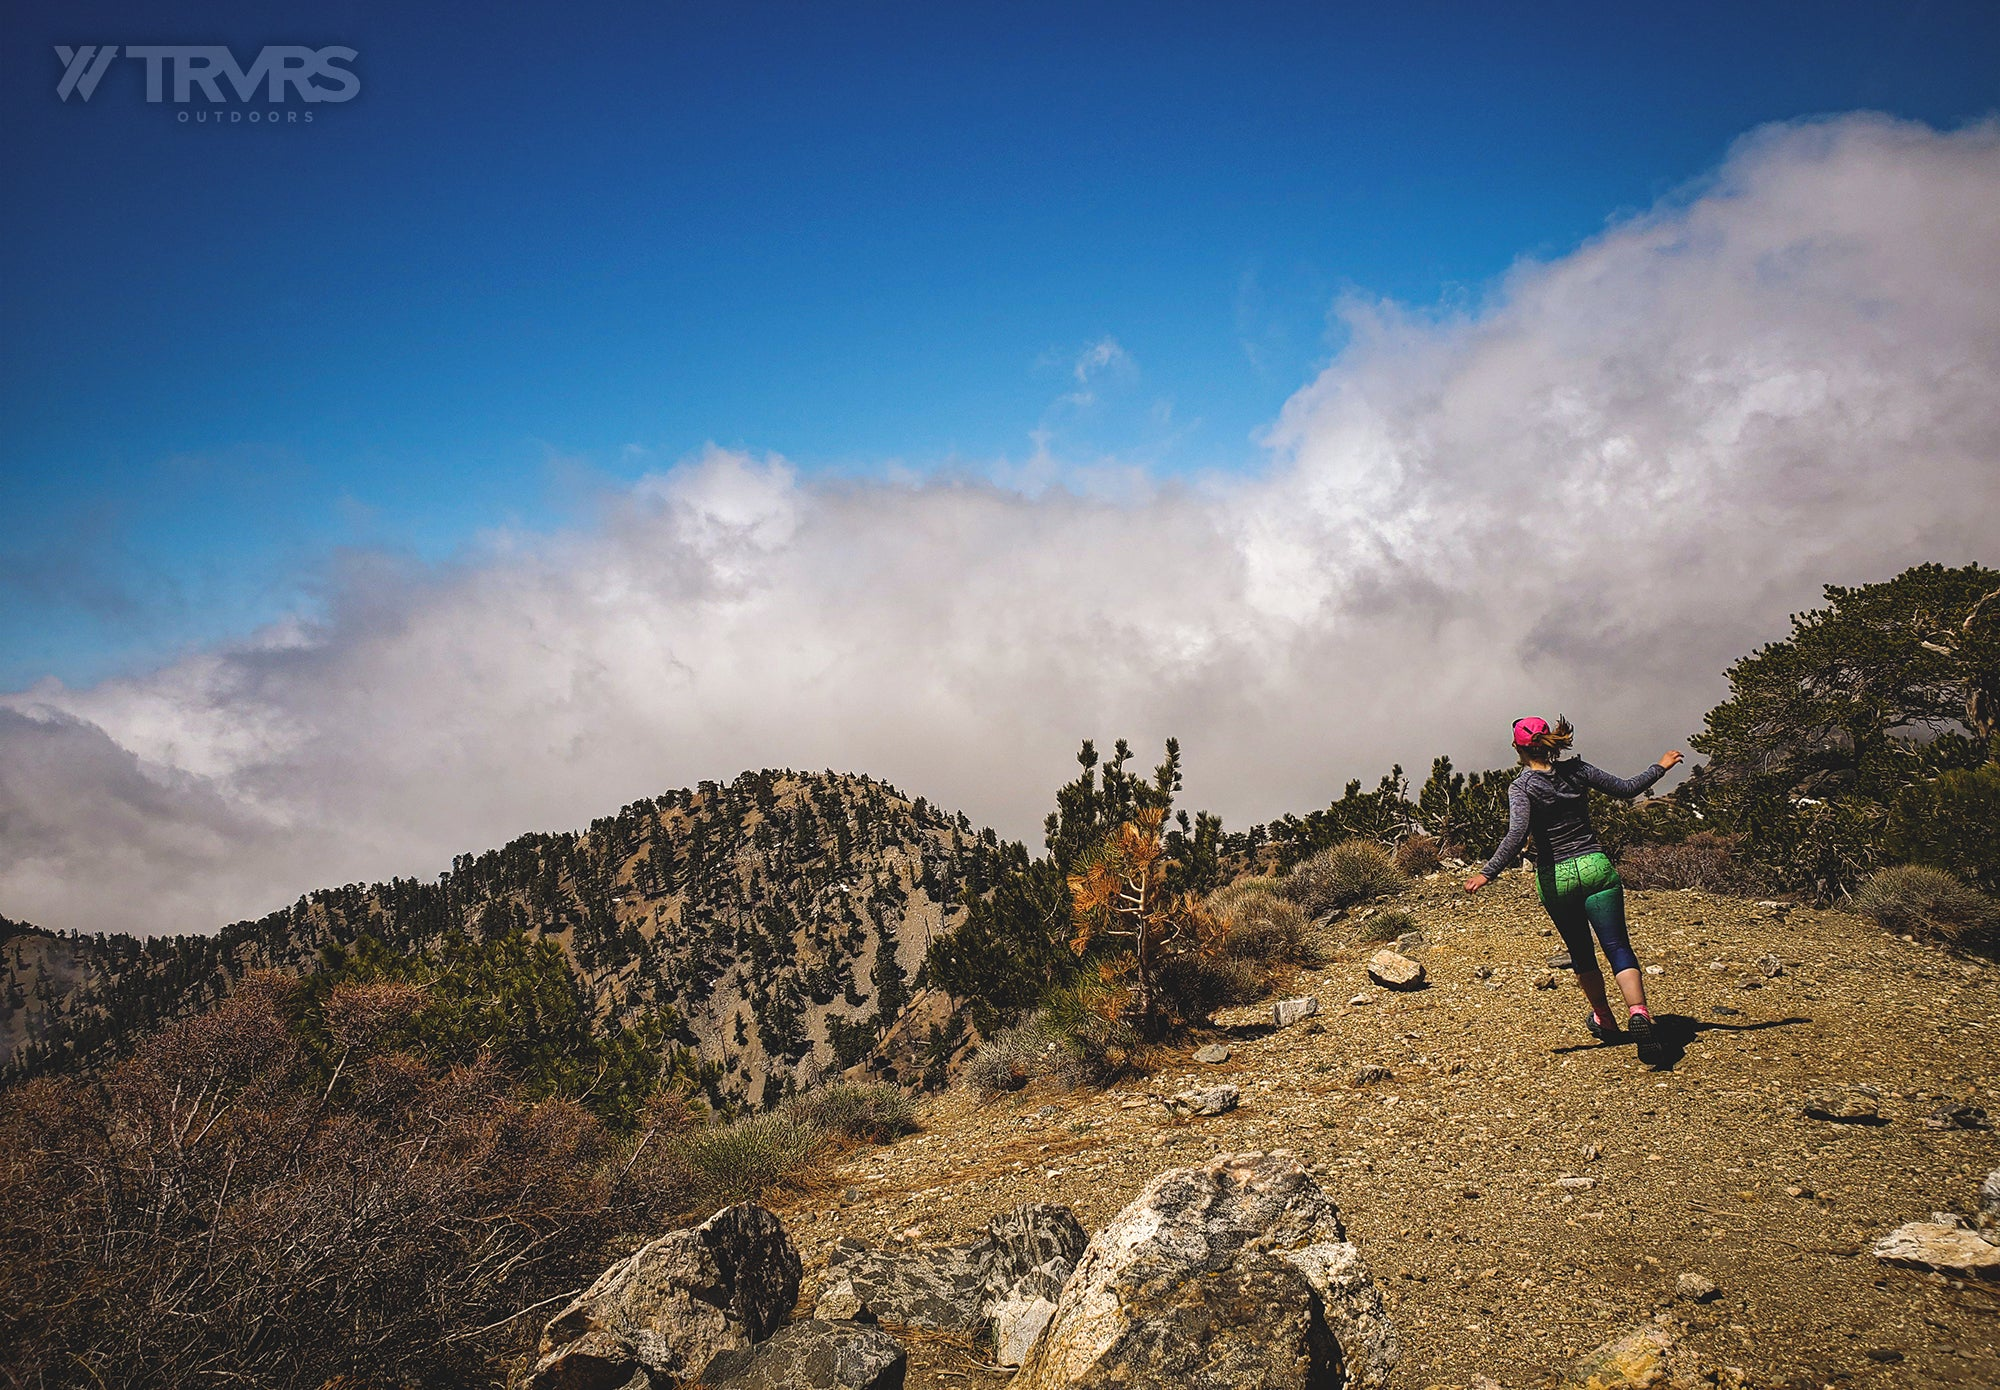 Sara Brown Running - San Gabriel Mountains, Angeles National Forest | TRVRS Outdoors